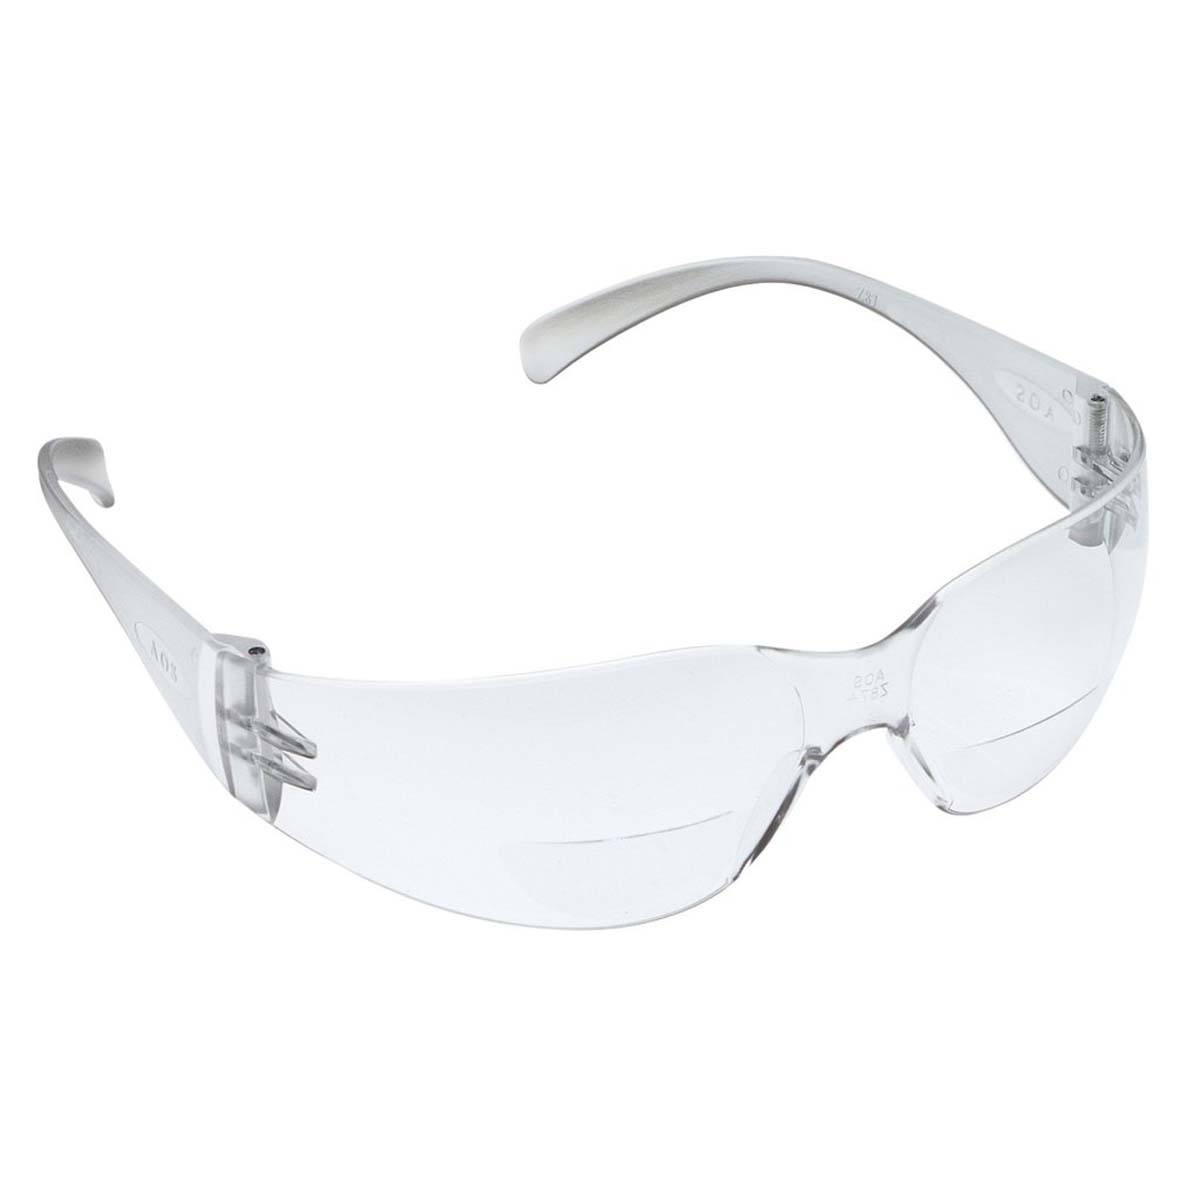 "3Mâ""¢ Virtuaâ""¢ Reader Protective Eyewear 11514-00000-20 Clear Anti-Fog Lens, Clear Temple, +2.0 Diopter"